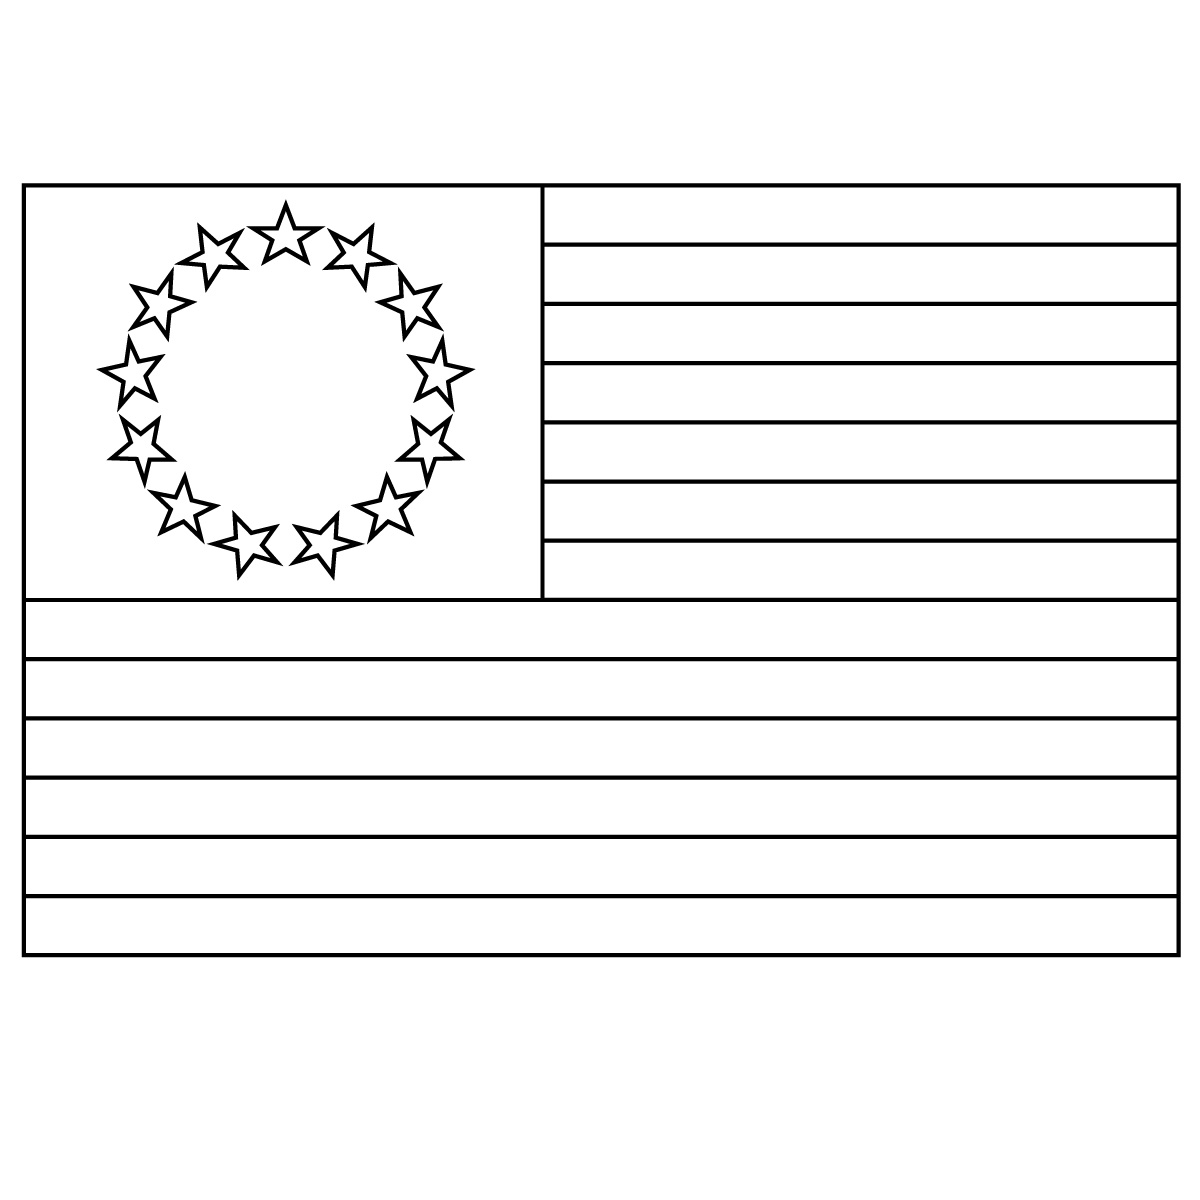 50 states flags coloring pages photo - 1